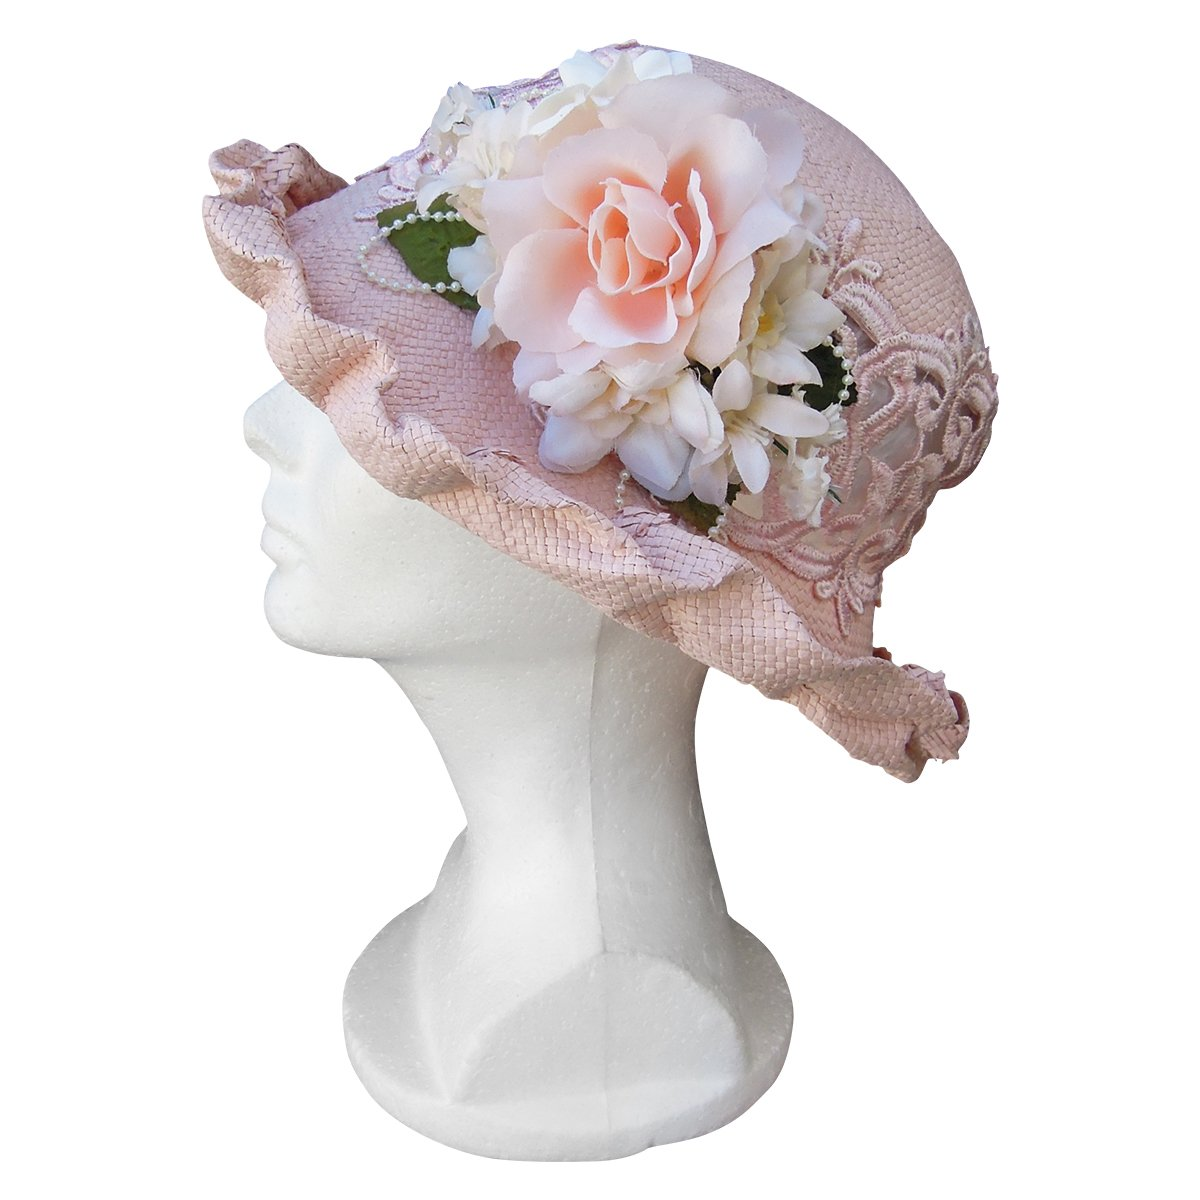 Edwardian Hats, Titanic Hats, Tea Party Hats  Lace Straw Cutaway Hat Narrow Brim Ladies Cloche Church $45.00 AT vintagedancer.com